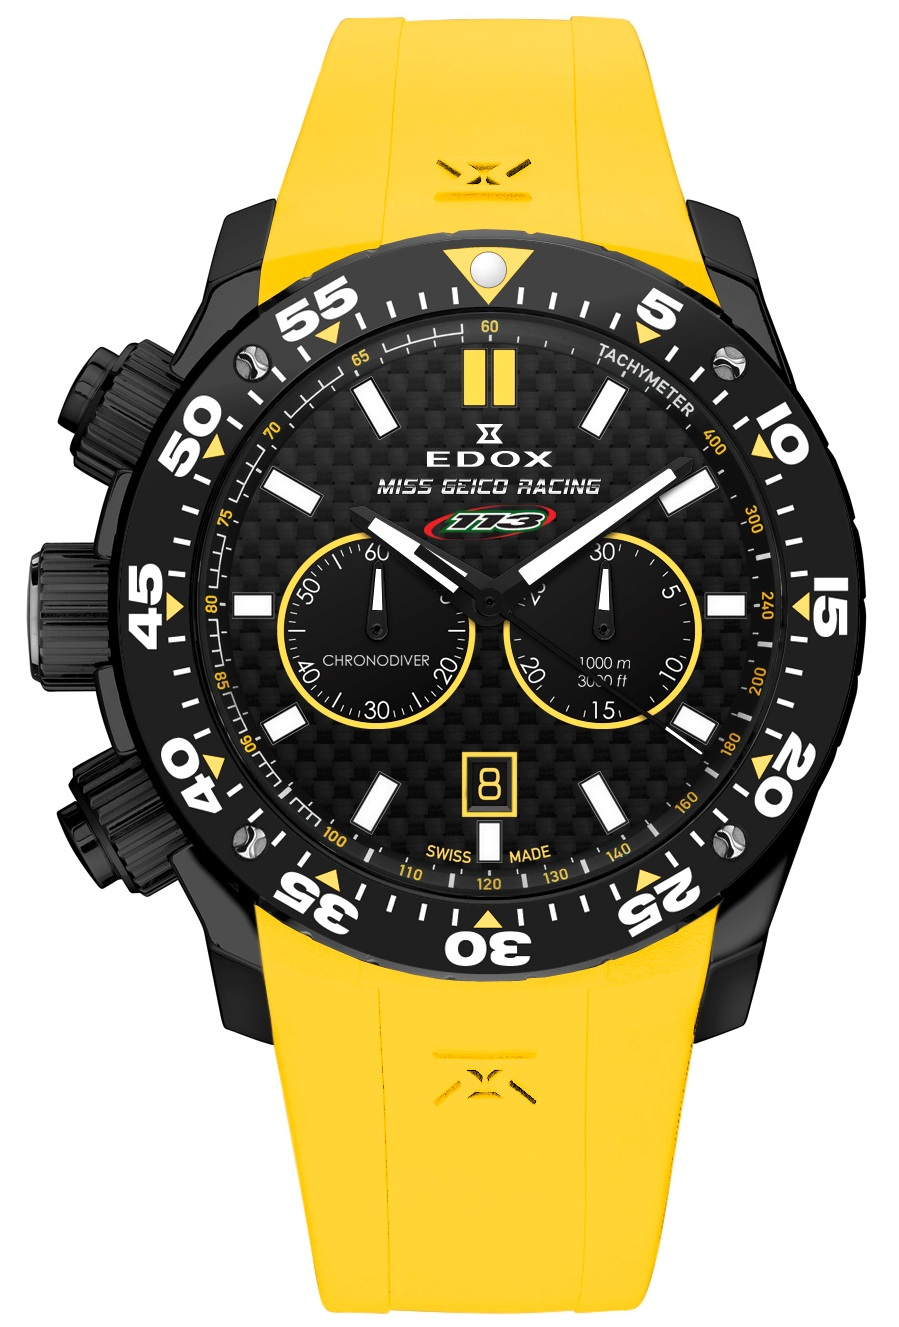 Edox Offshore Sport Watch Miss Geico Five Time World Champion Celebration Chronograph